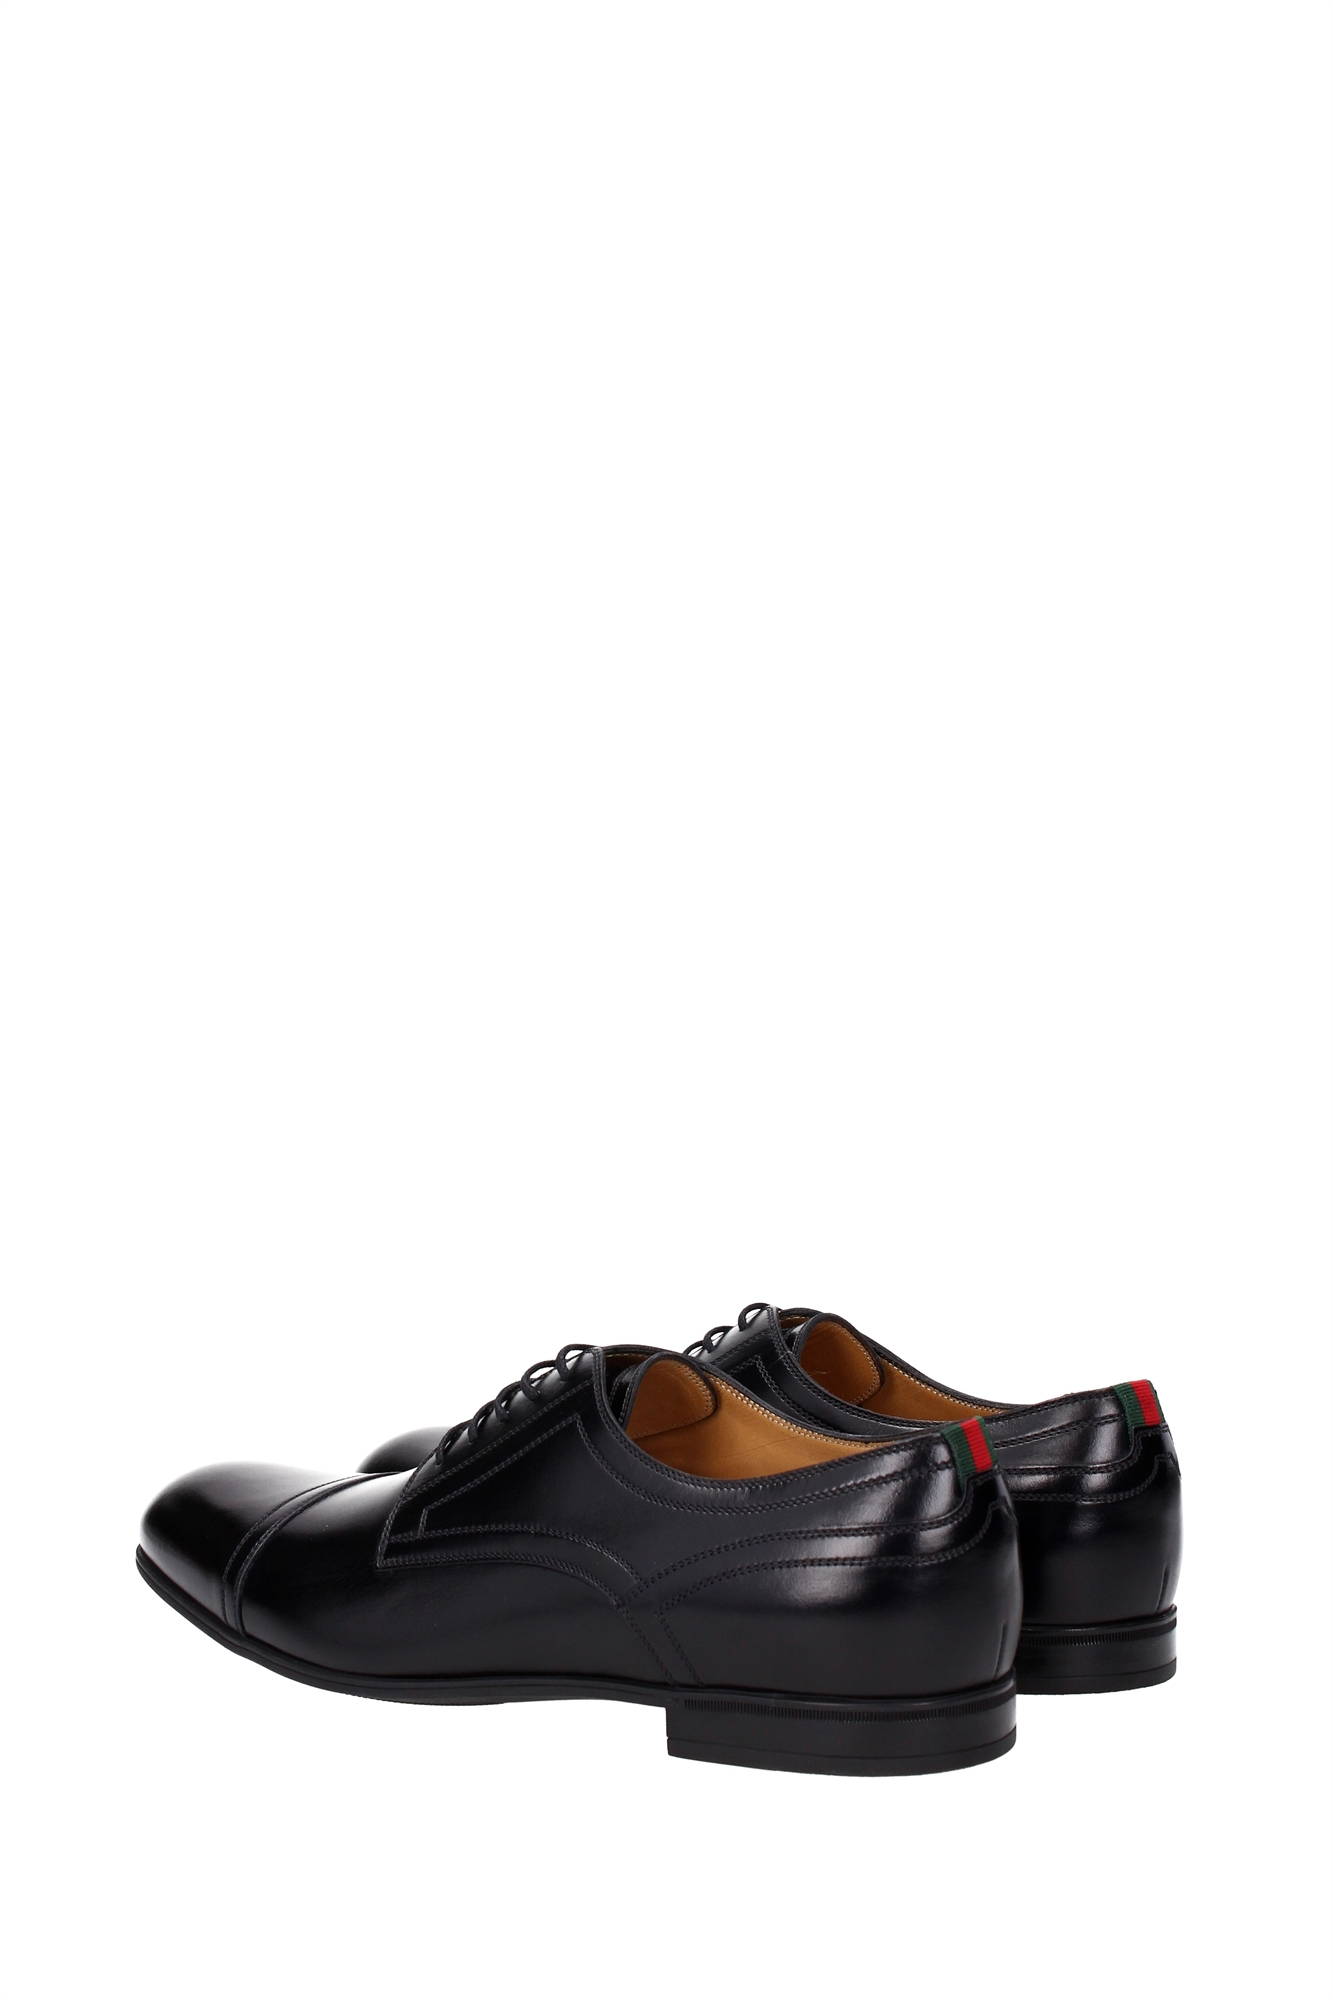 lace up shoes gucci leather black 429211azm301060 ebay